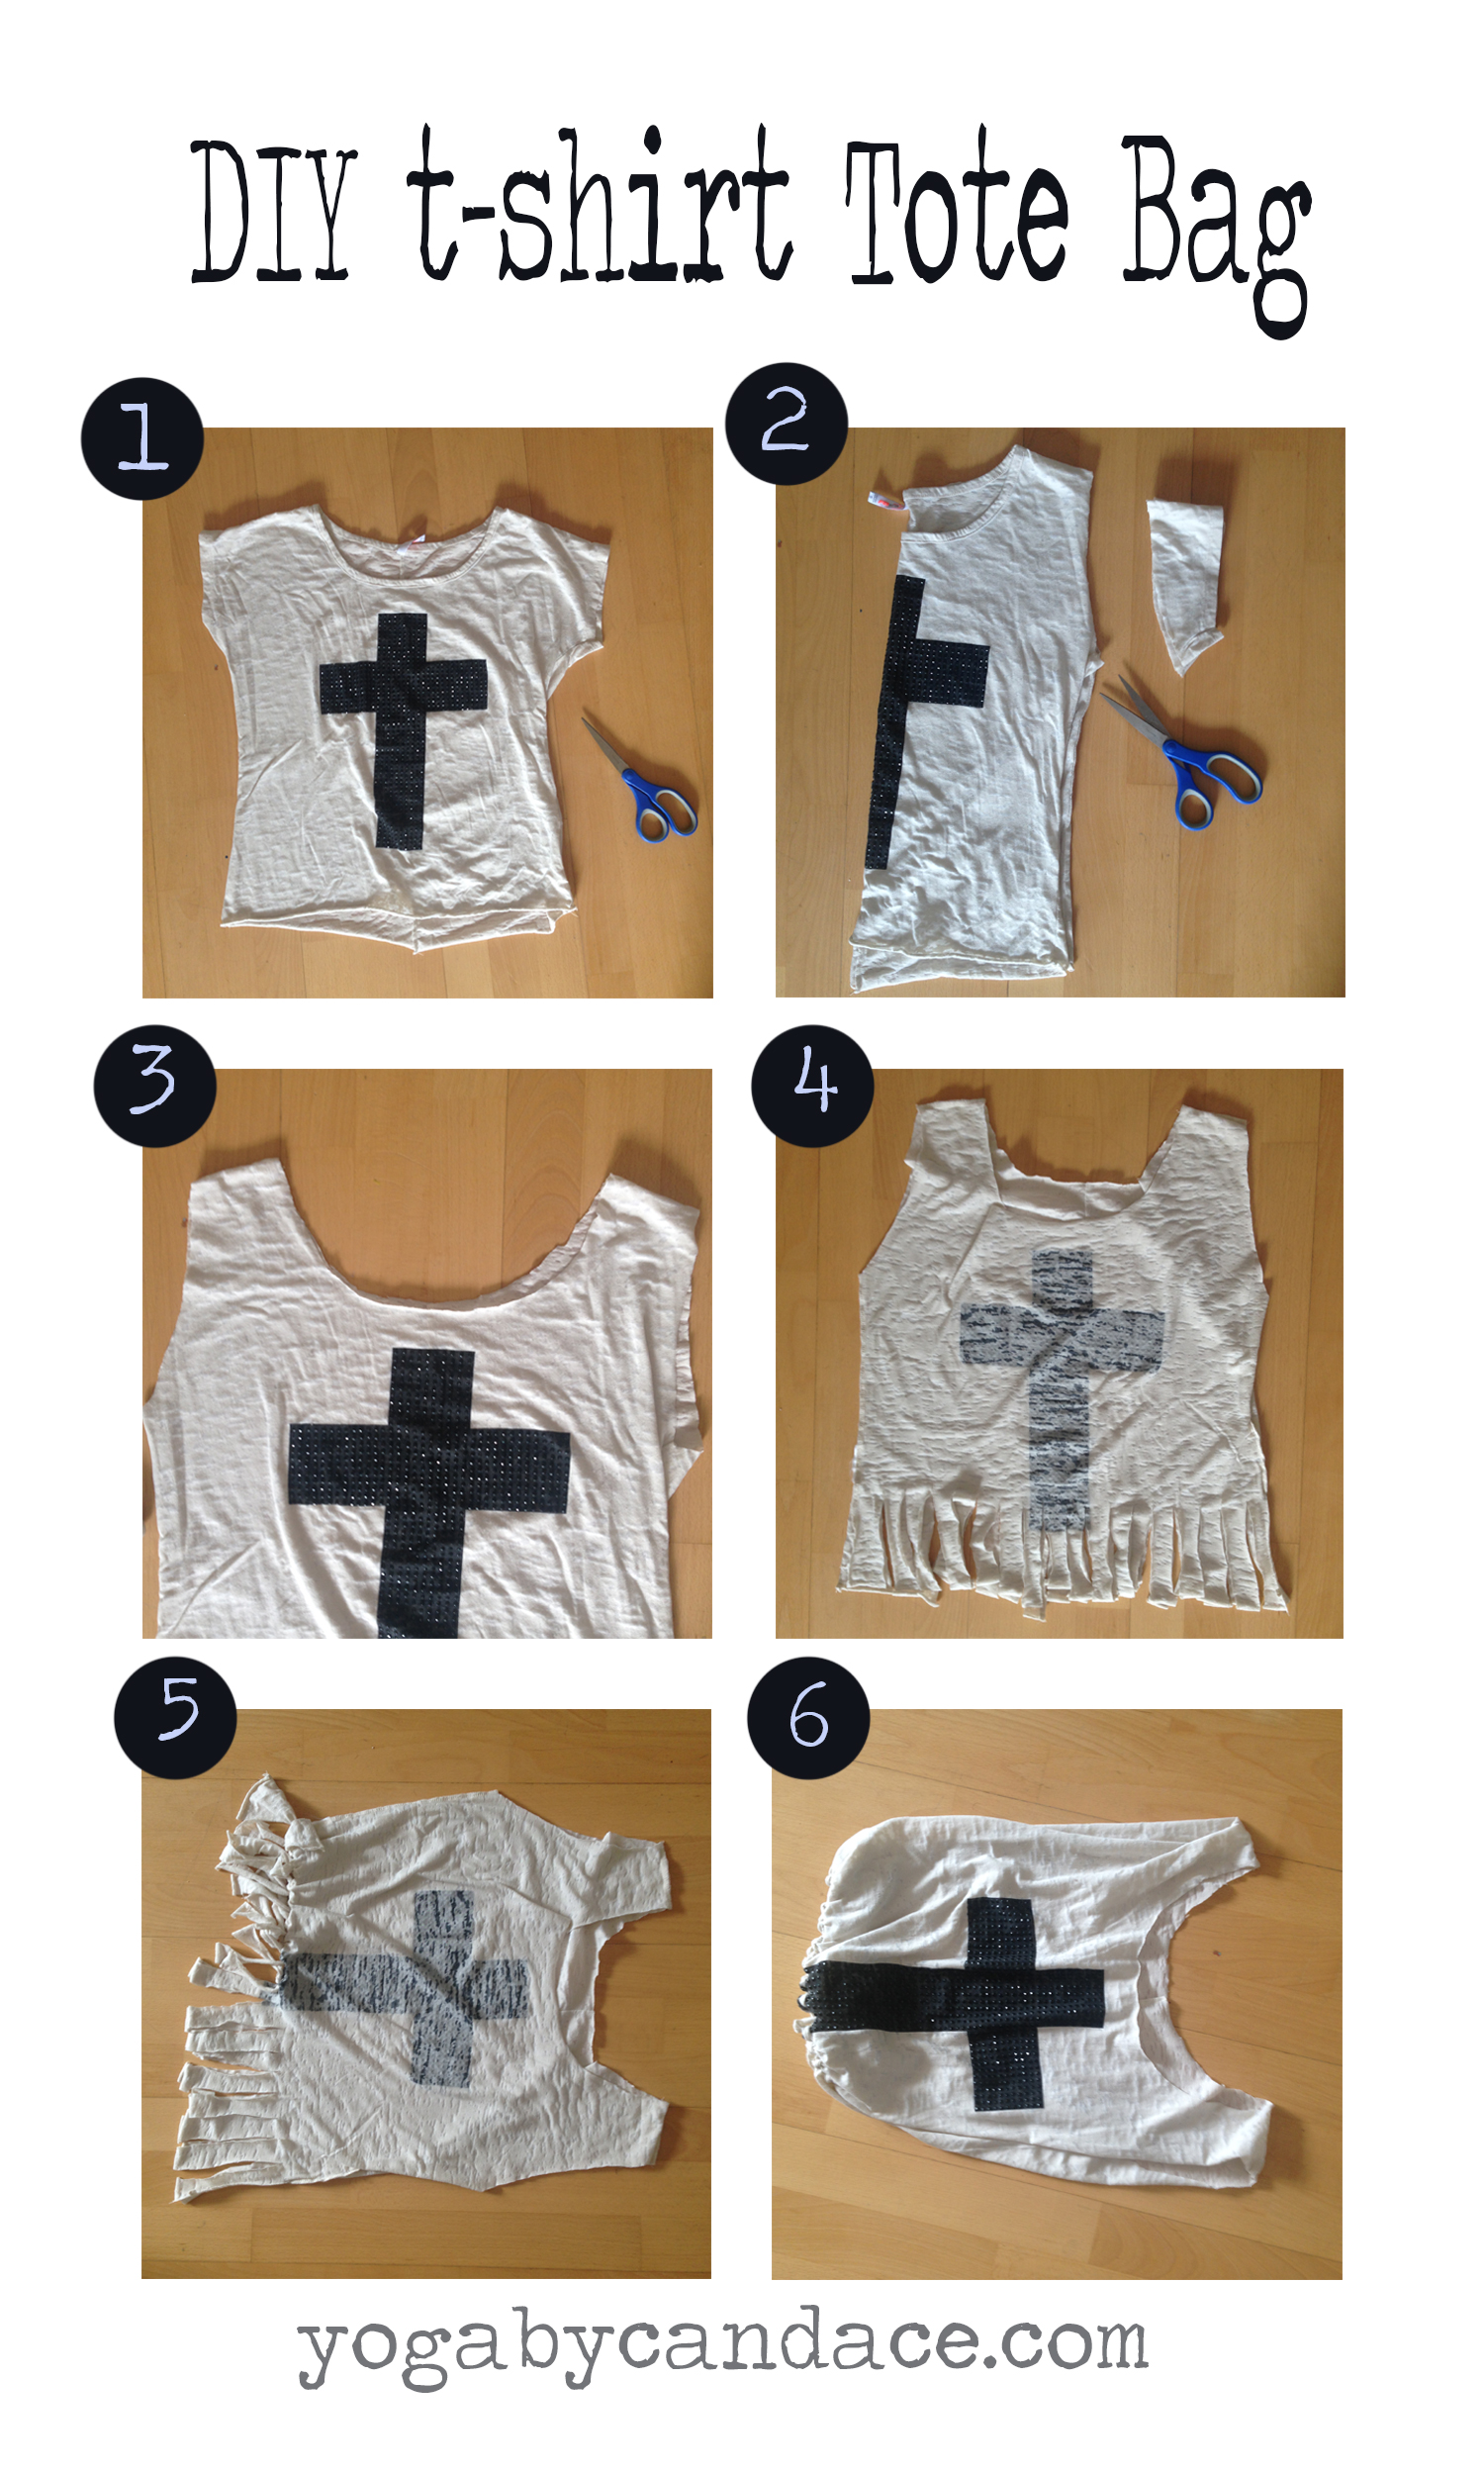 Pin now, make later! A diy tote bag out of a t-shirt